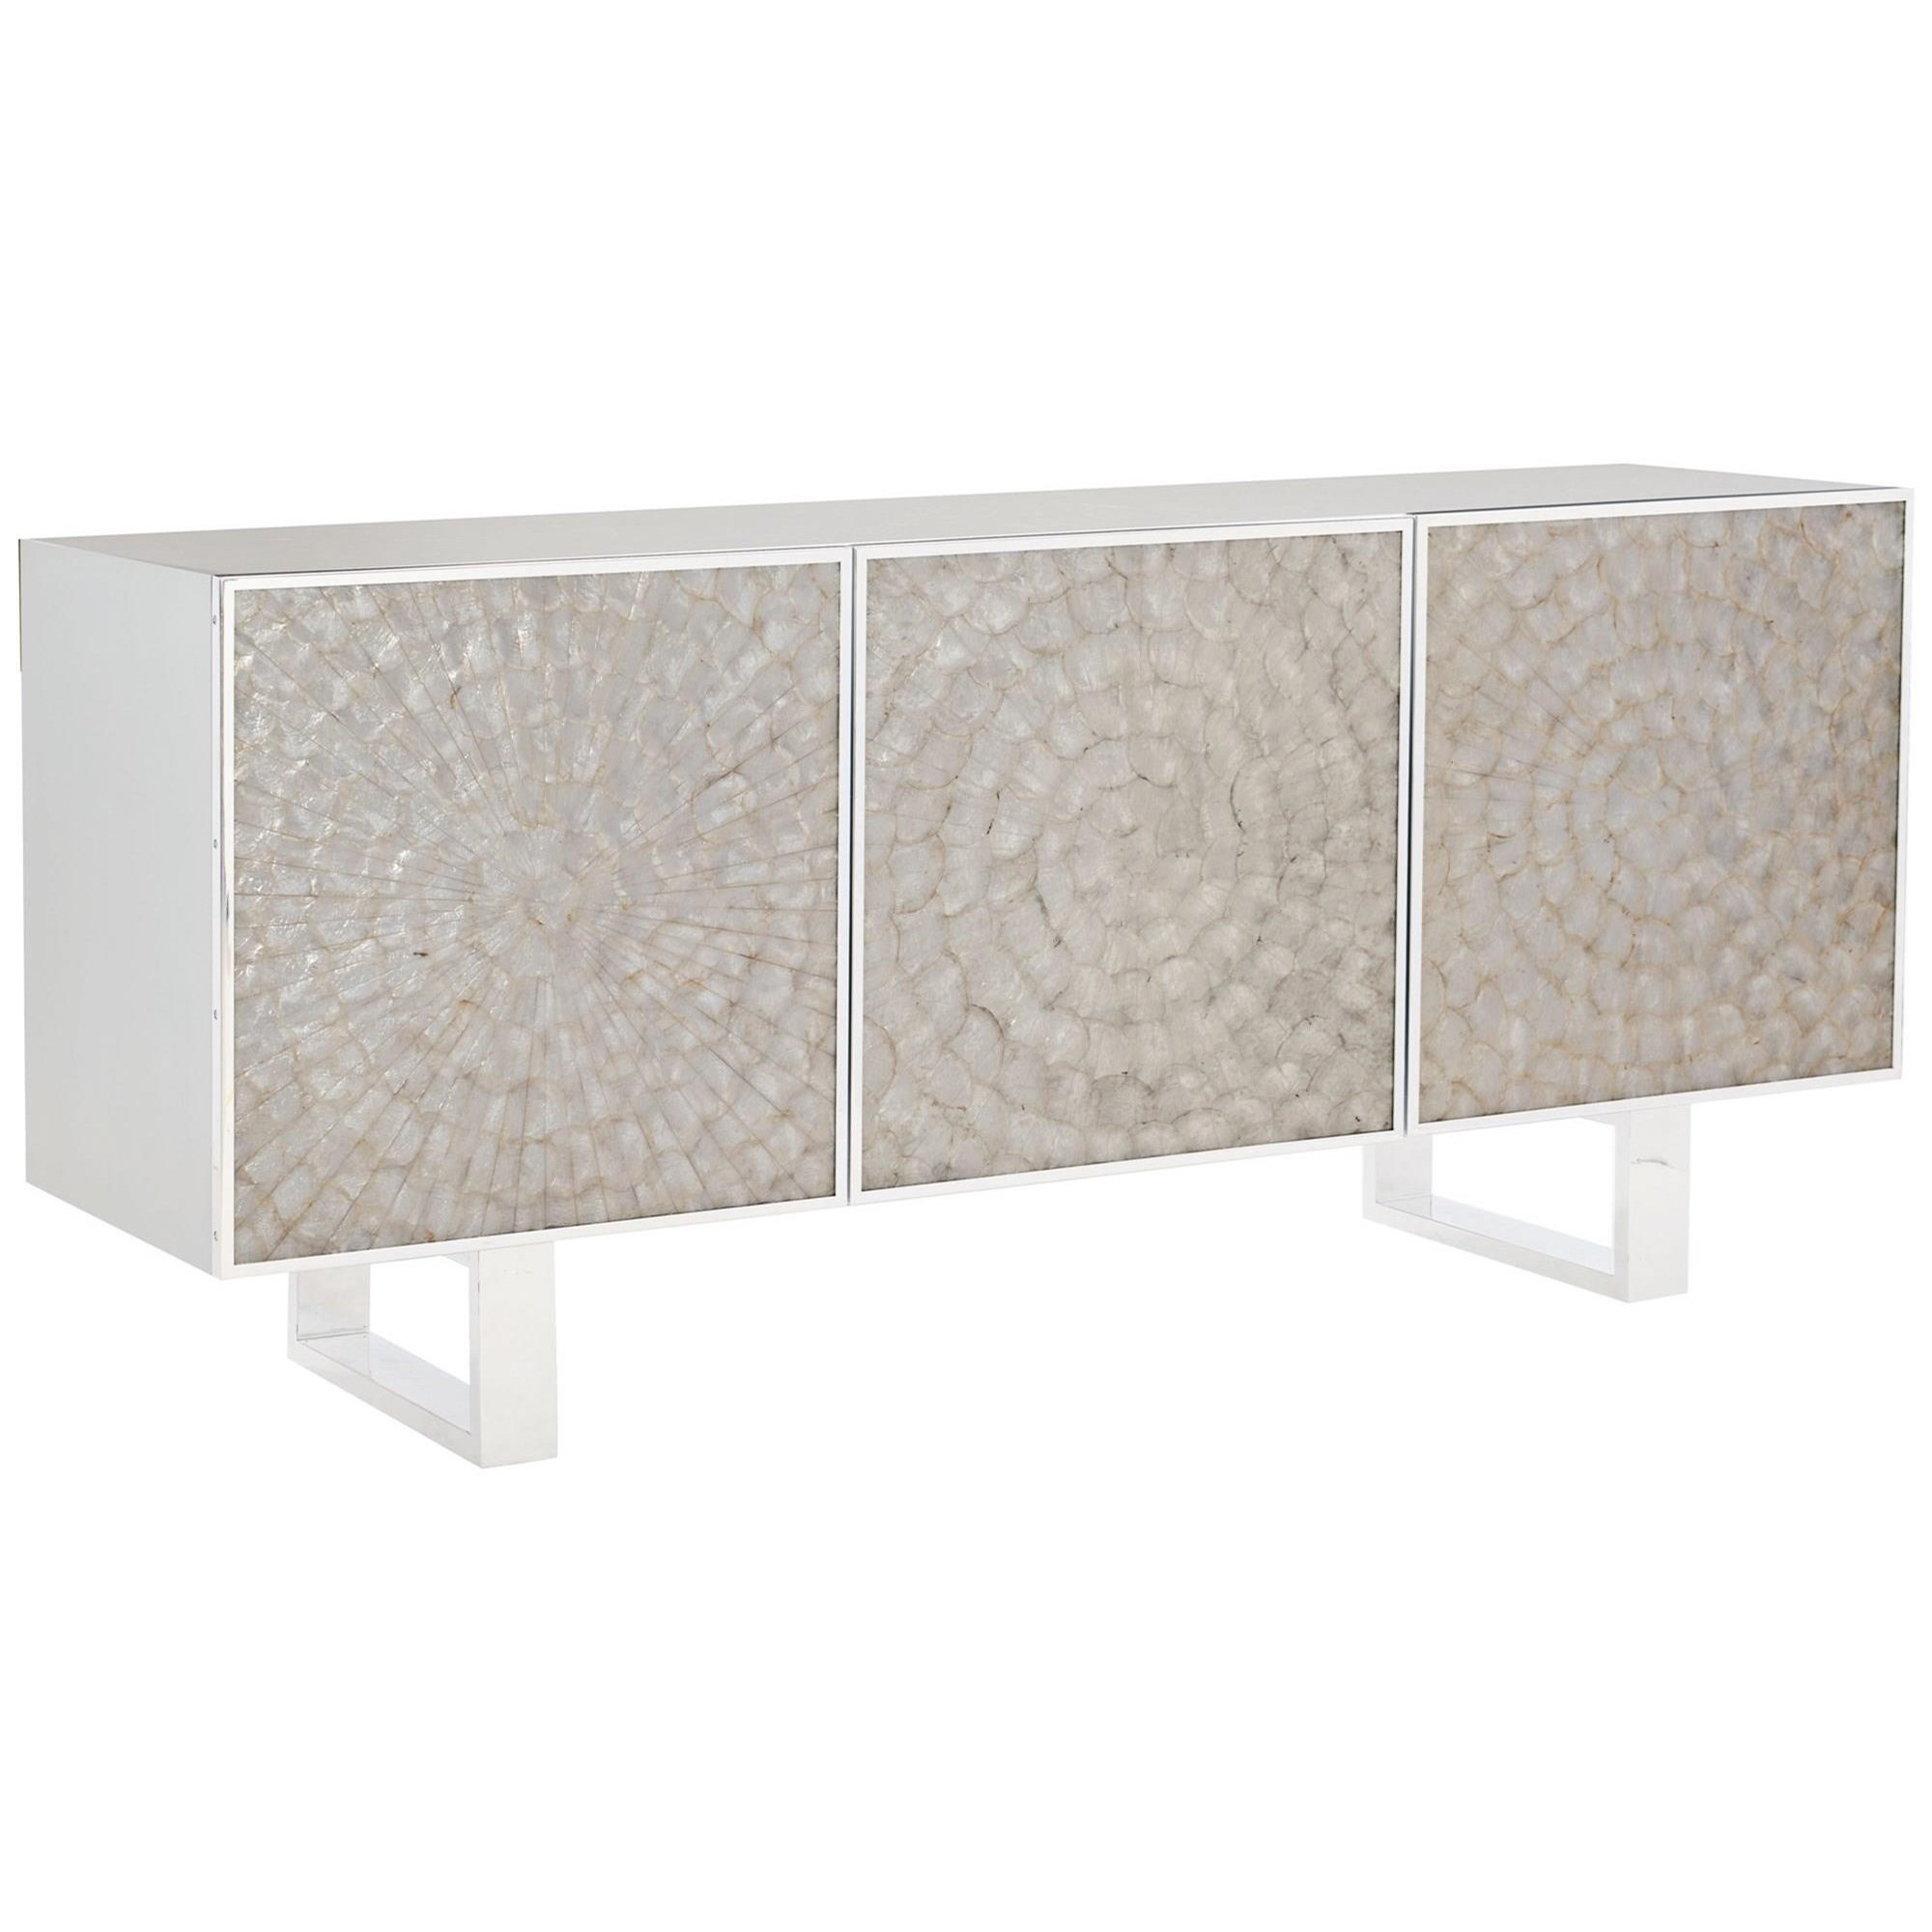 Interiors - Helios Entertainment Console by Bernhardt at Dream Home Interiors